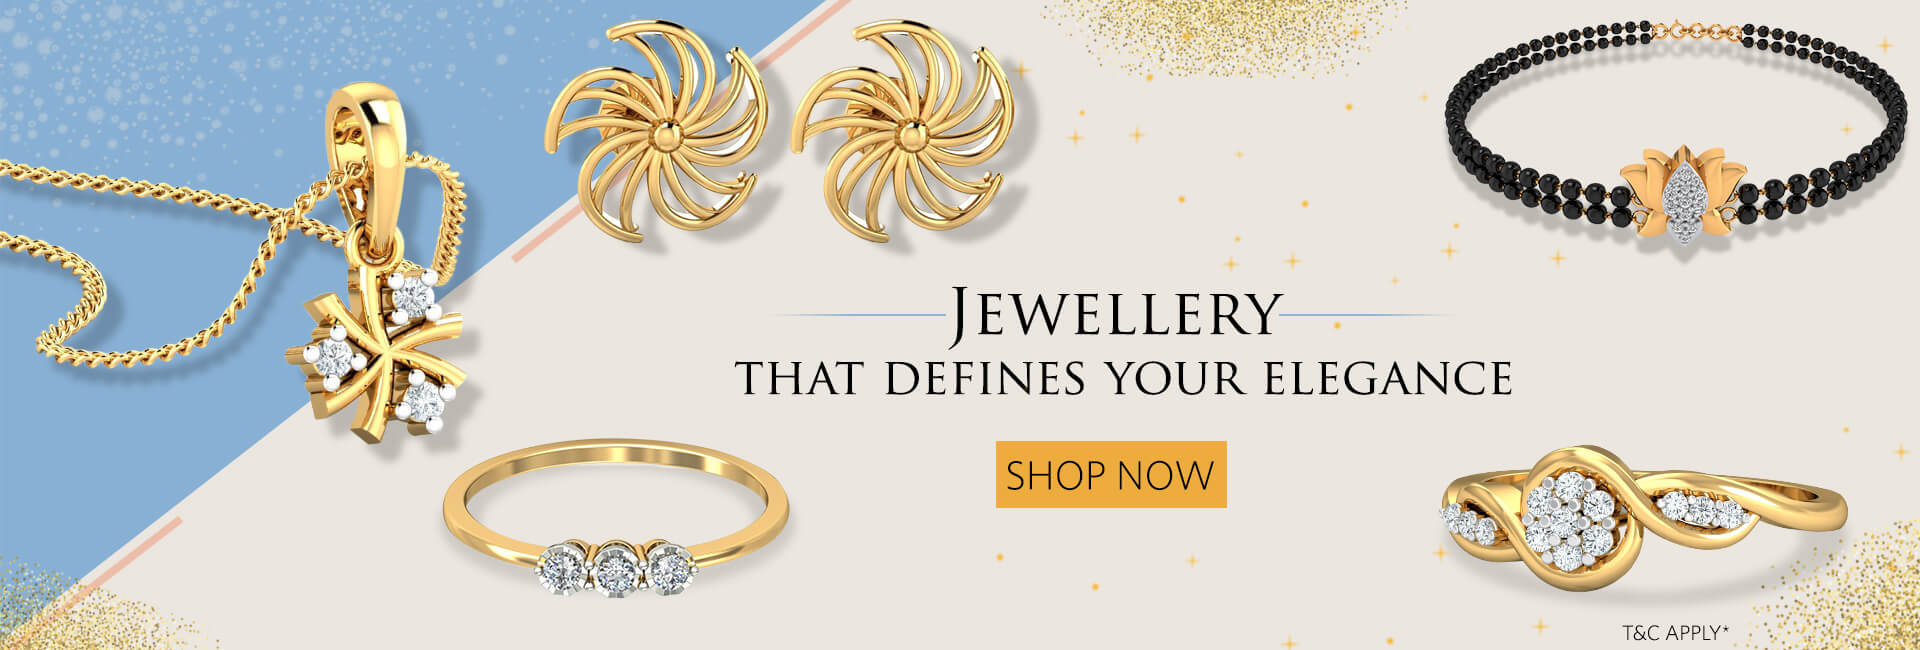 Jewelry Company PNG - 113497